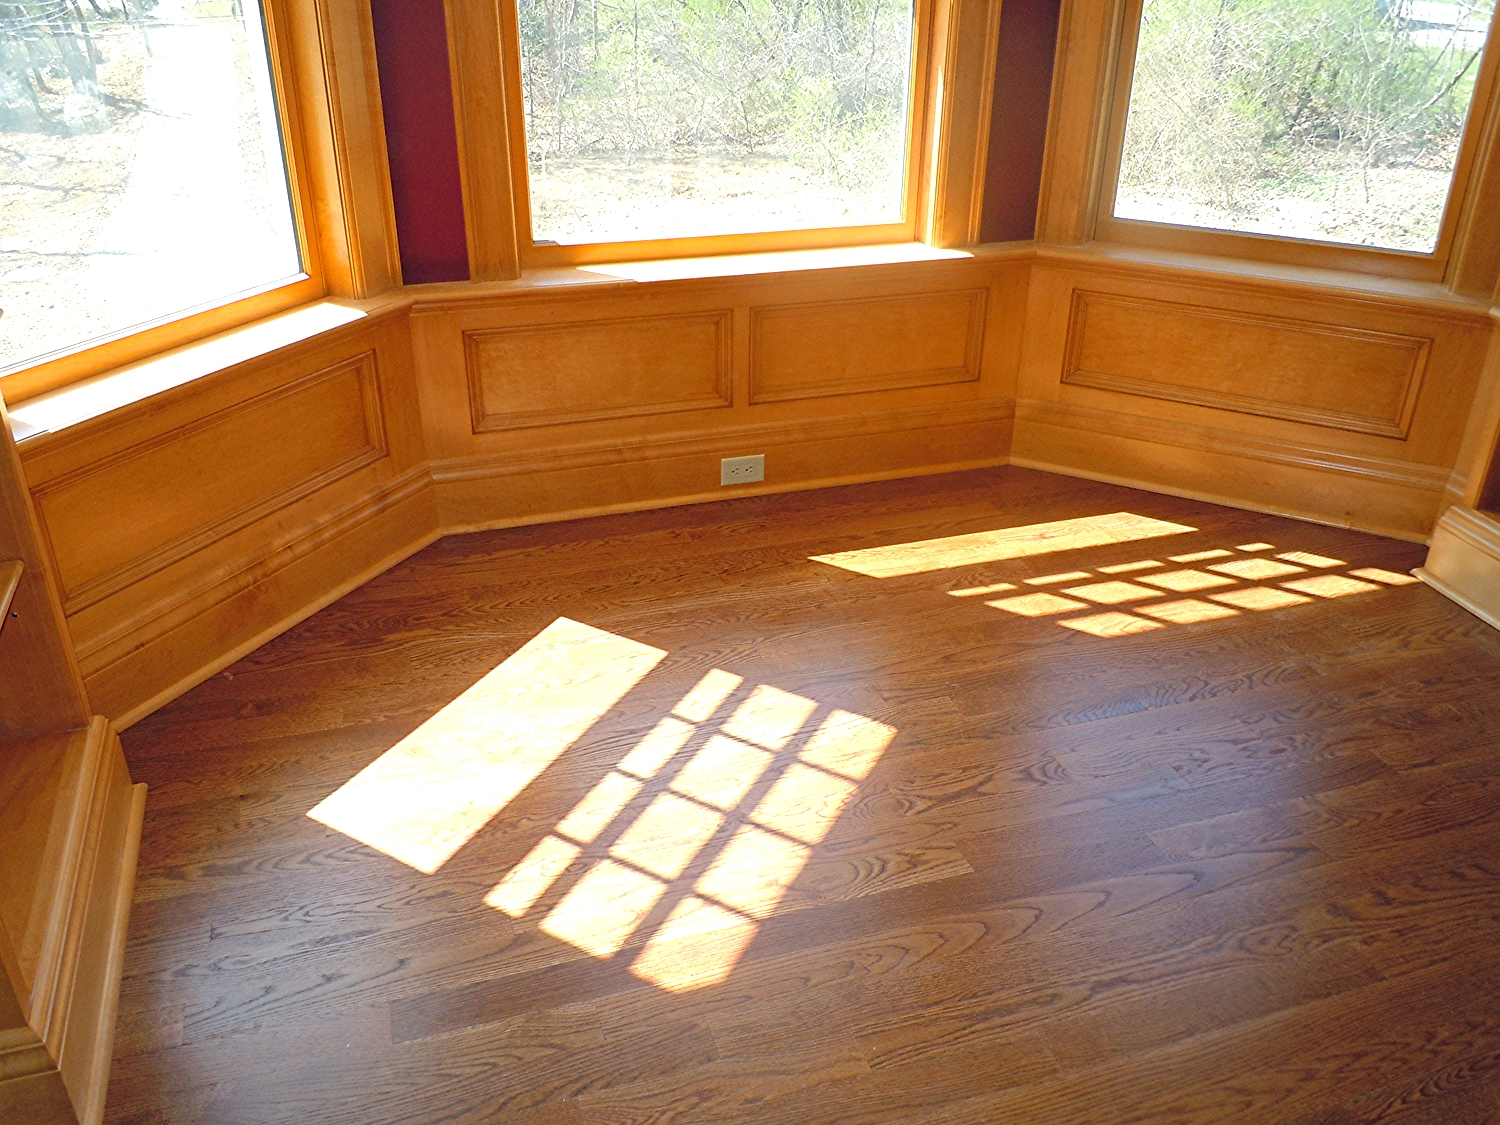 Window alcove with lower panels